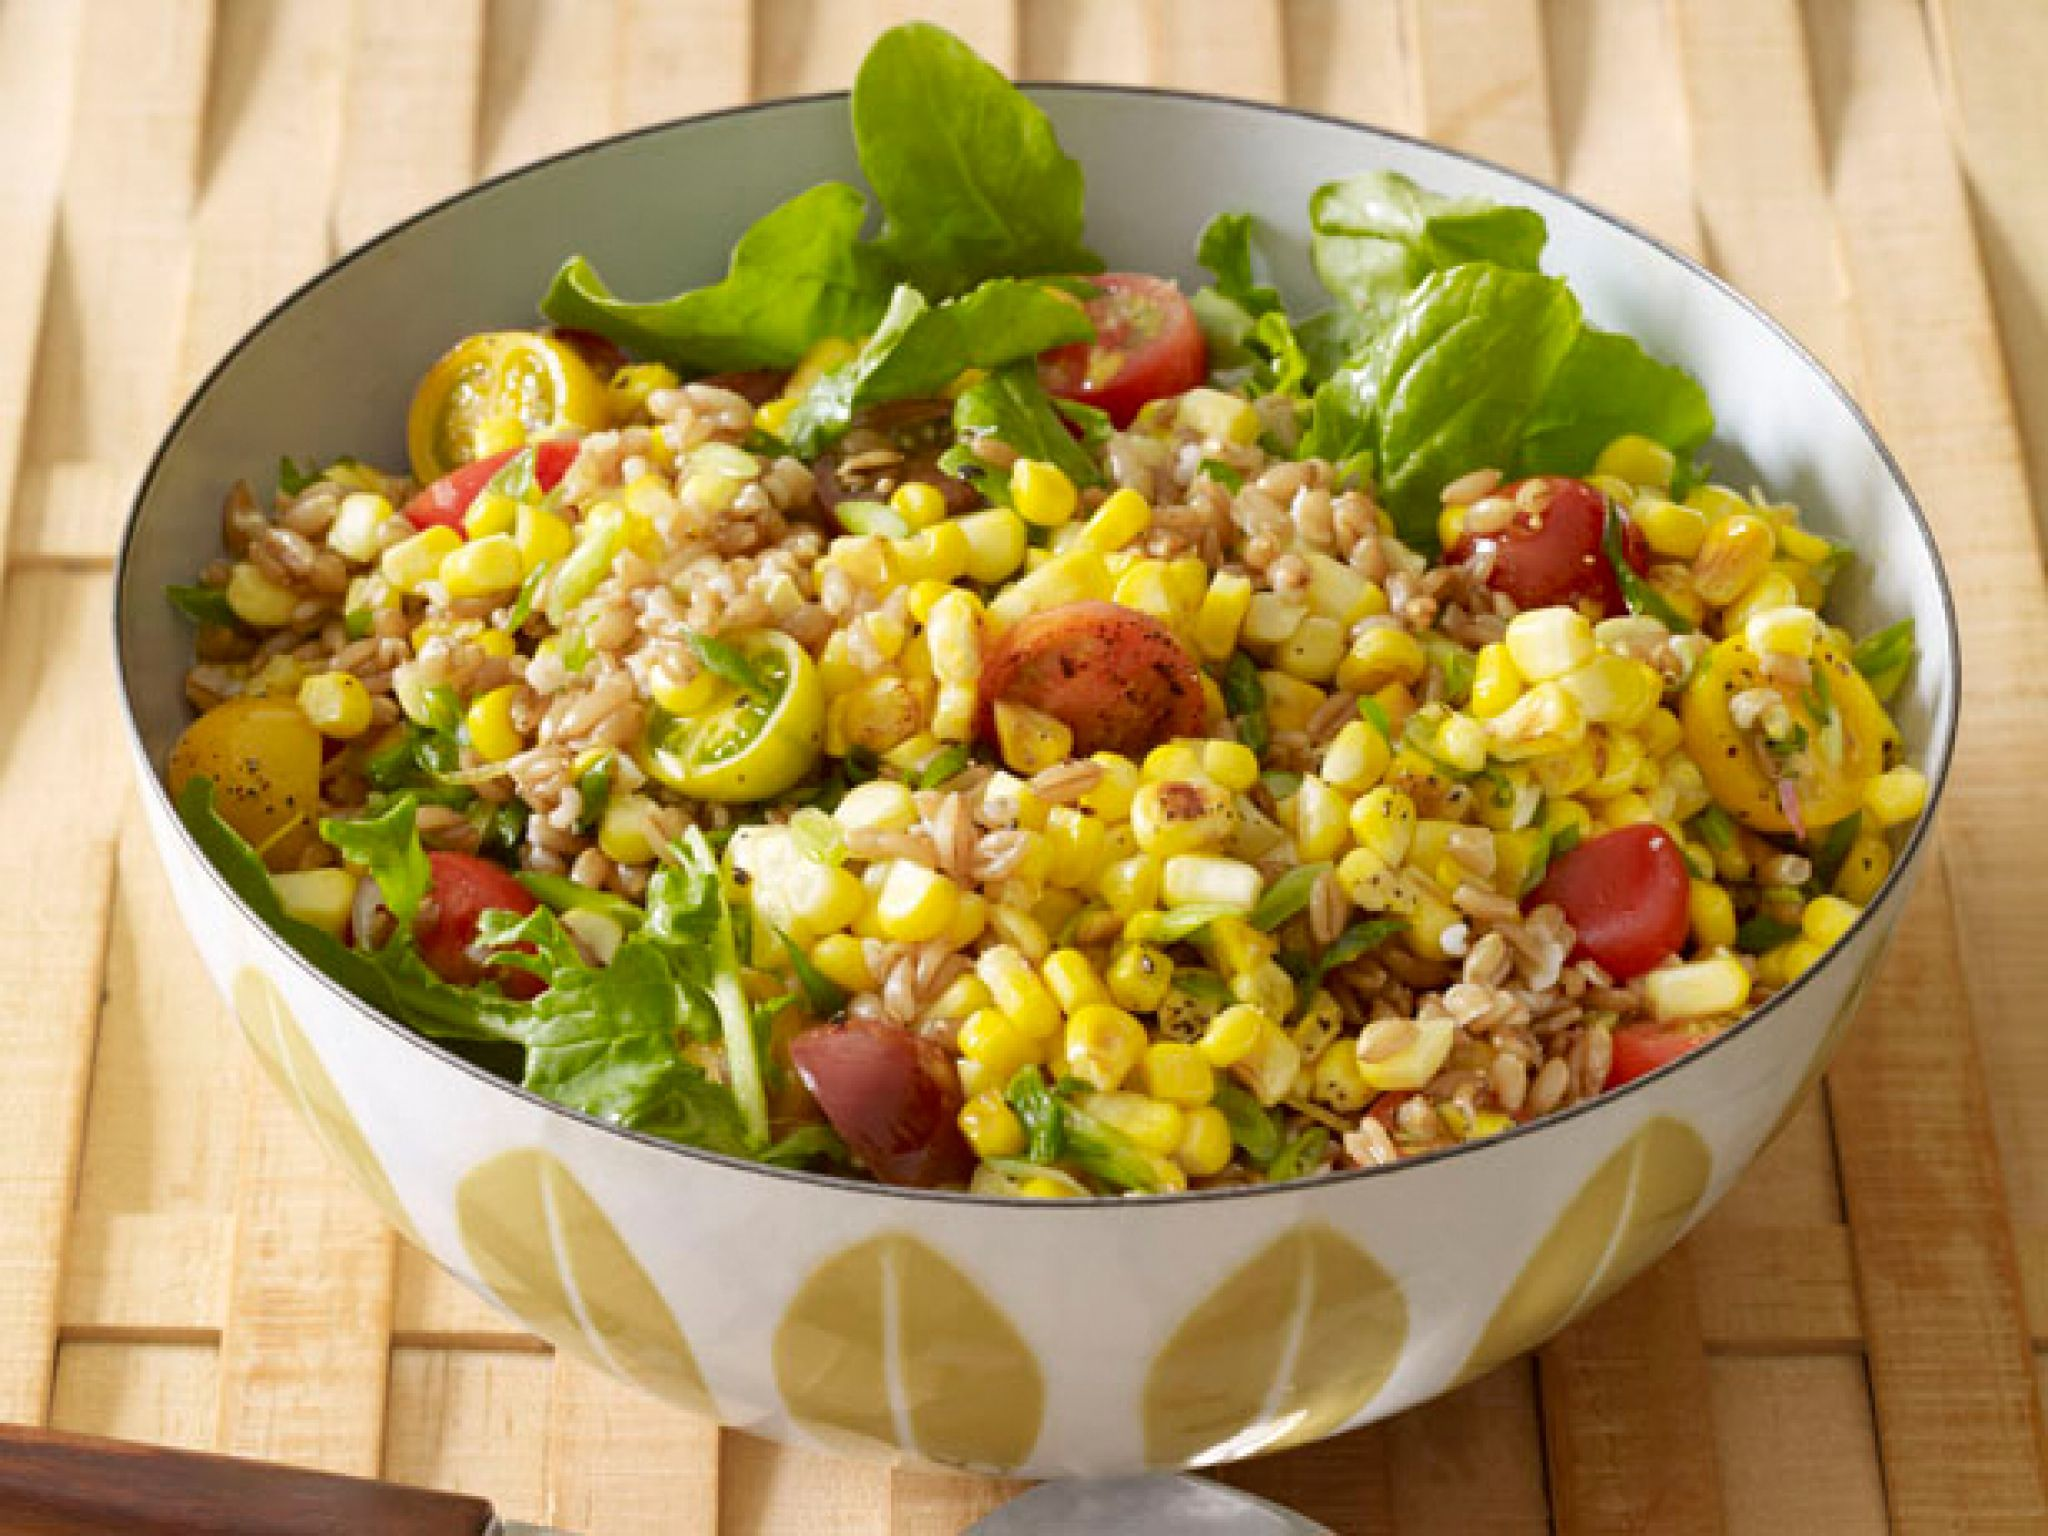 Farro and corn salad recipe corn salad recipes corn salads and dishes farro and corn salad recipe from food network forumfinder Image collections